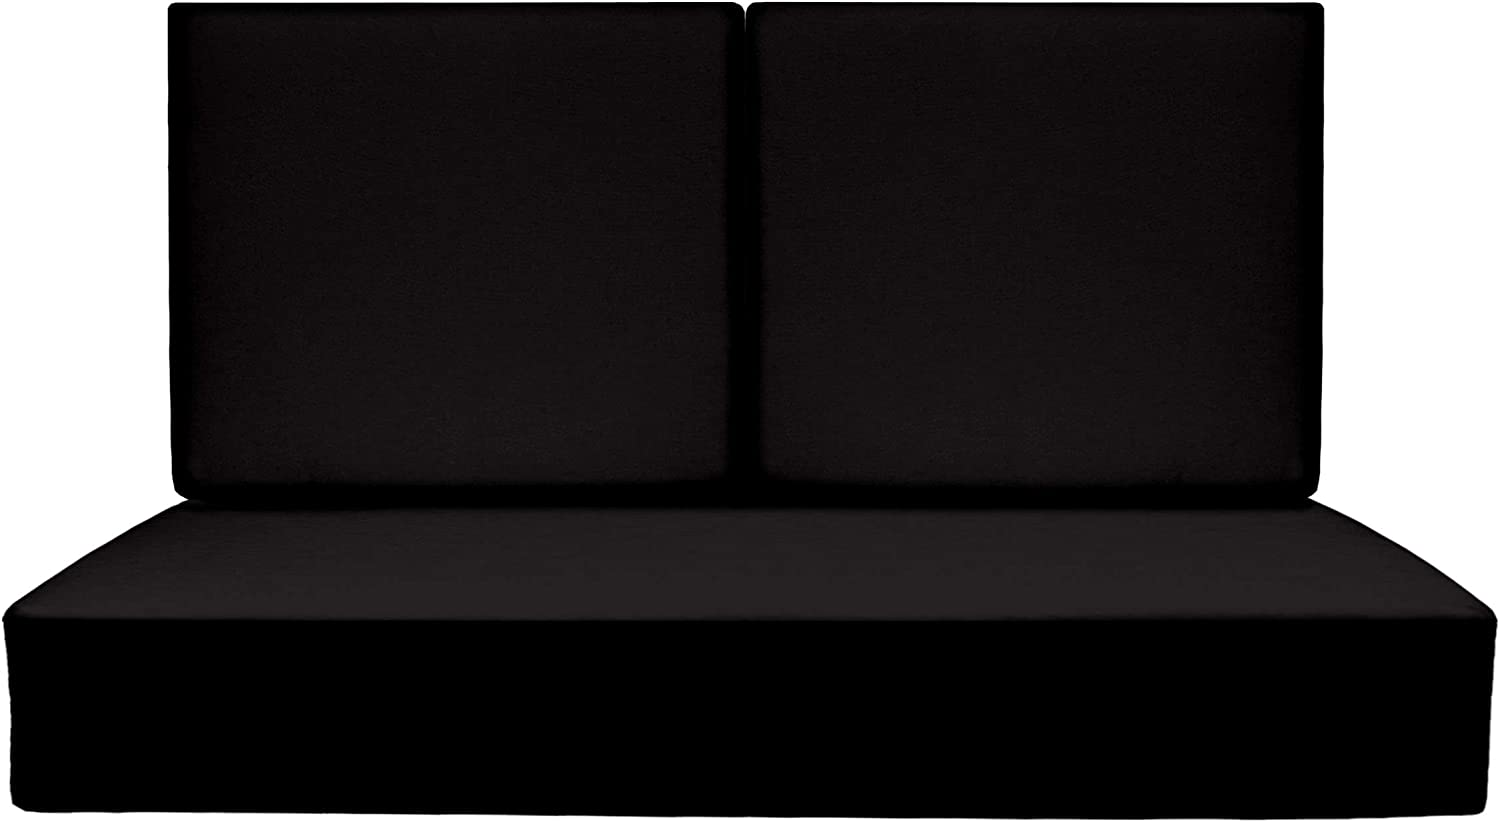 """RSH Décor Indoor Outdoor Foam Deep Seating Loveseat Cushion Set, 46"""" x 26"""" x 5"""" Seat and 23"""" x 21"""" x 3"""" Back, Choose Color (Black)"""